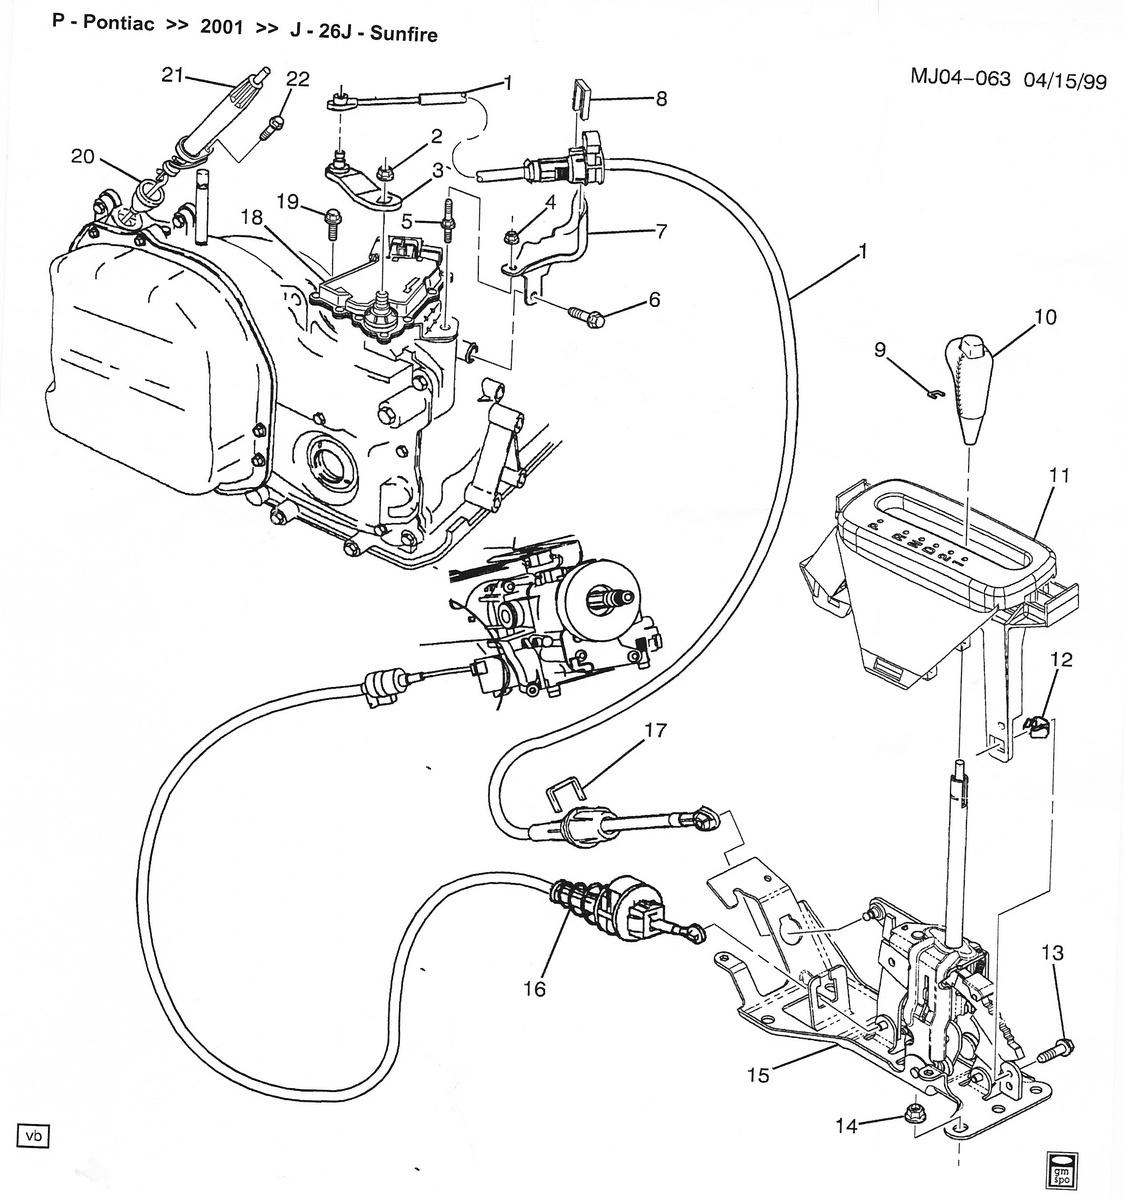 P 0996b43f8037e94b furthermore Buick Lesabre Rear Suspension Diagram additionally P 0996b43f81b3c8ee further Vacuum Hose Routing likewise Need 1981 Ca Vacuum Diagram Fsm Download Pic Ideal 212687. on 1997 toyota camry vacuum hose diagram